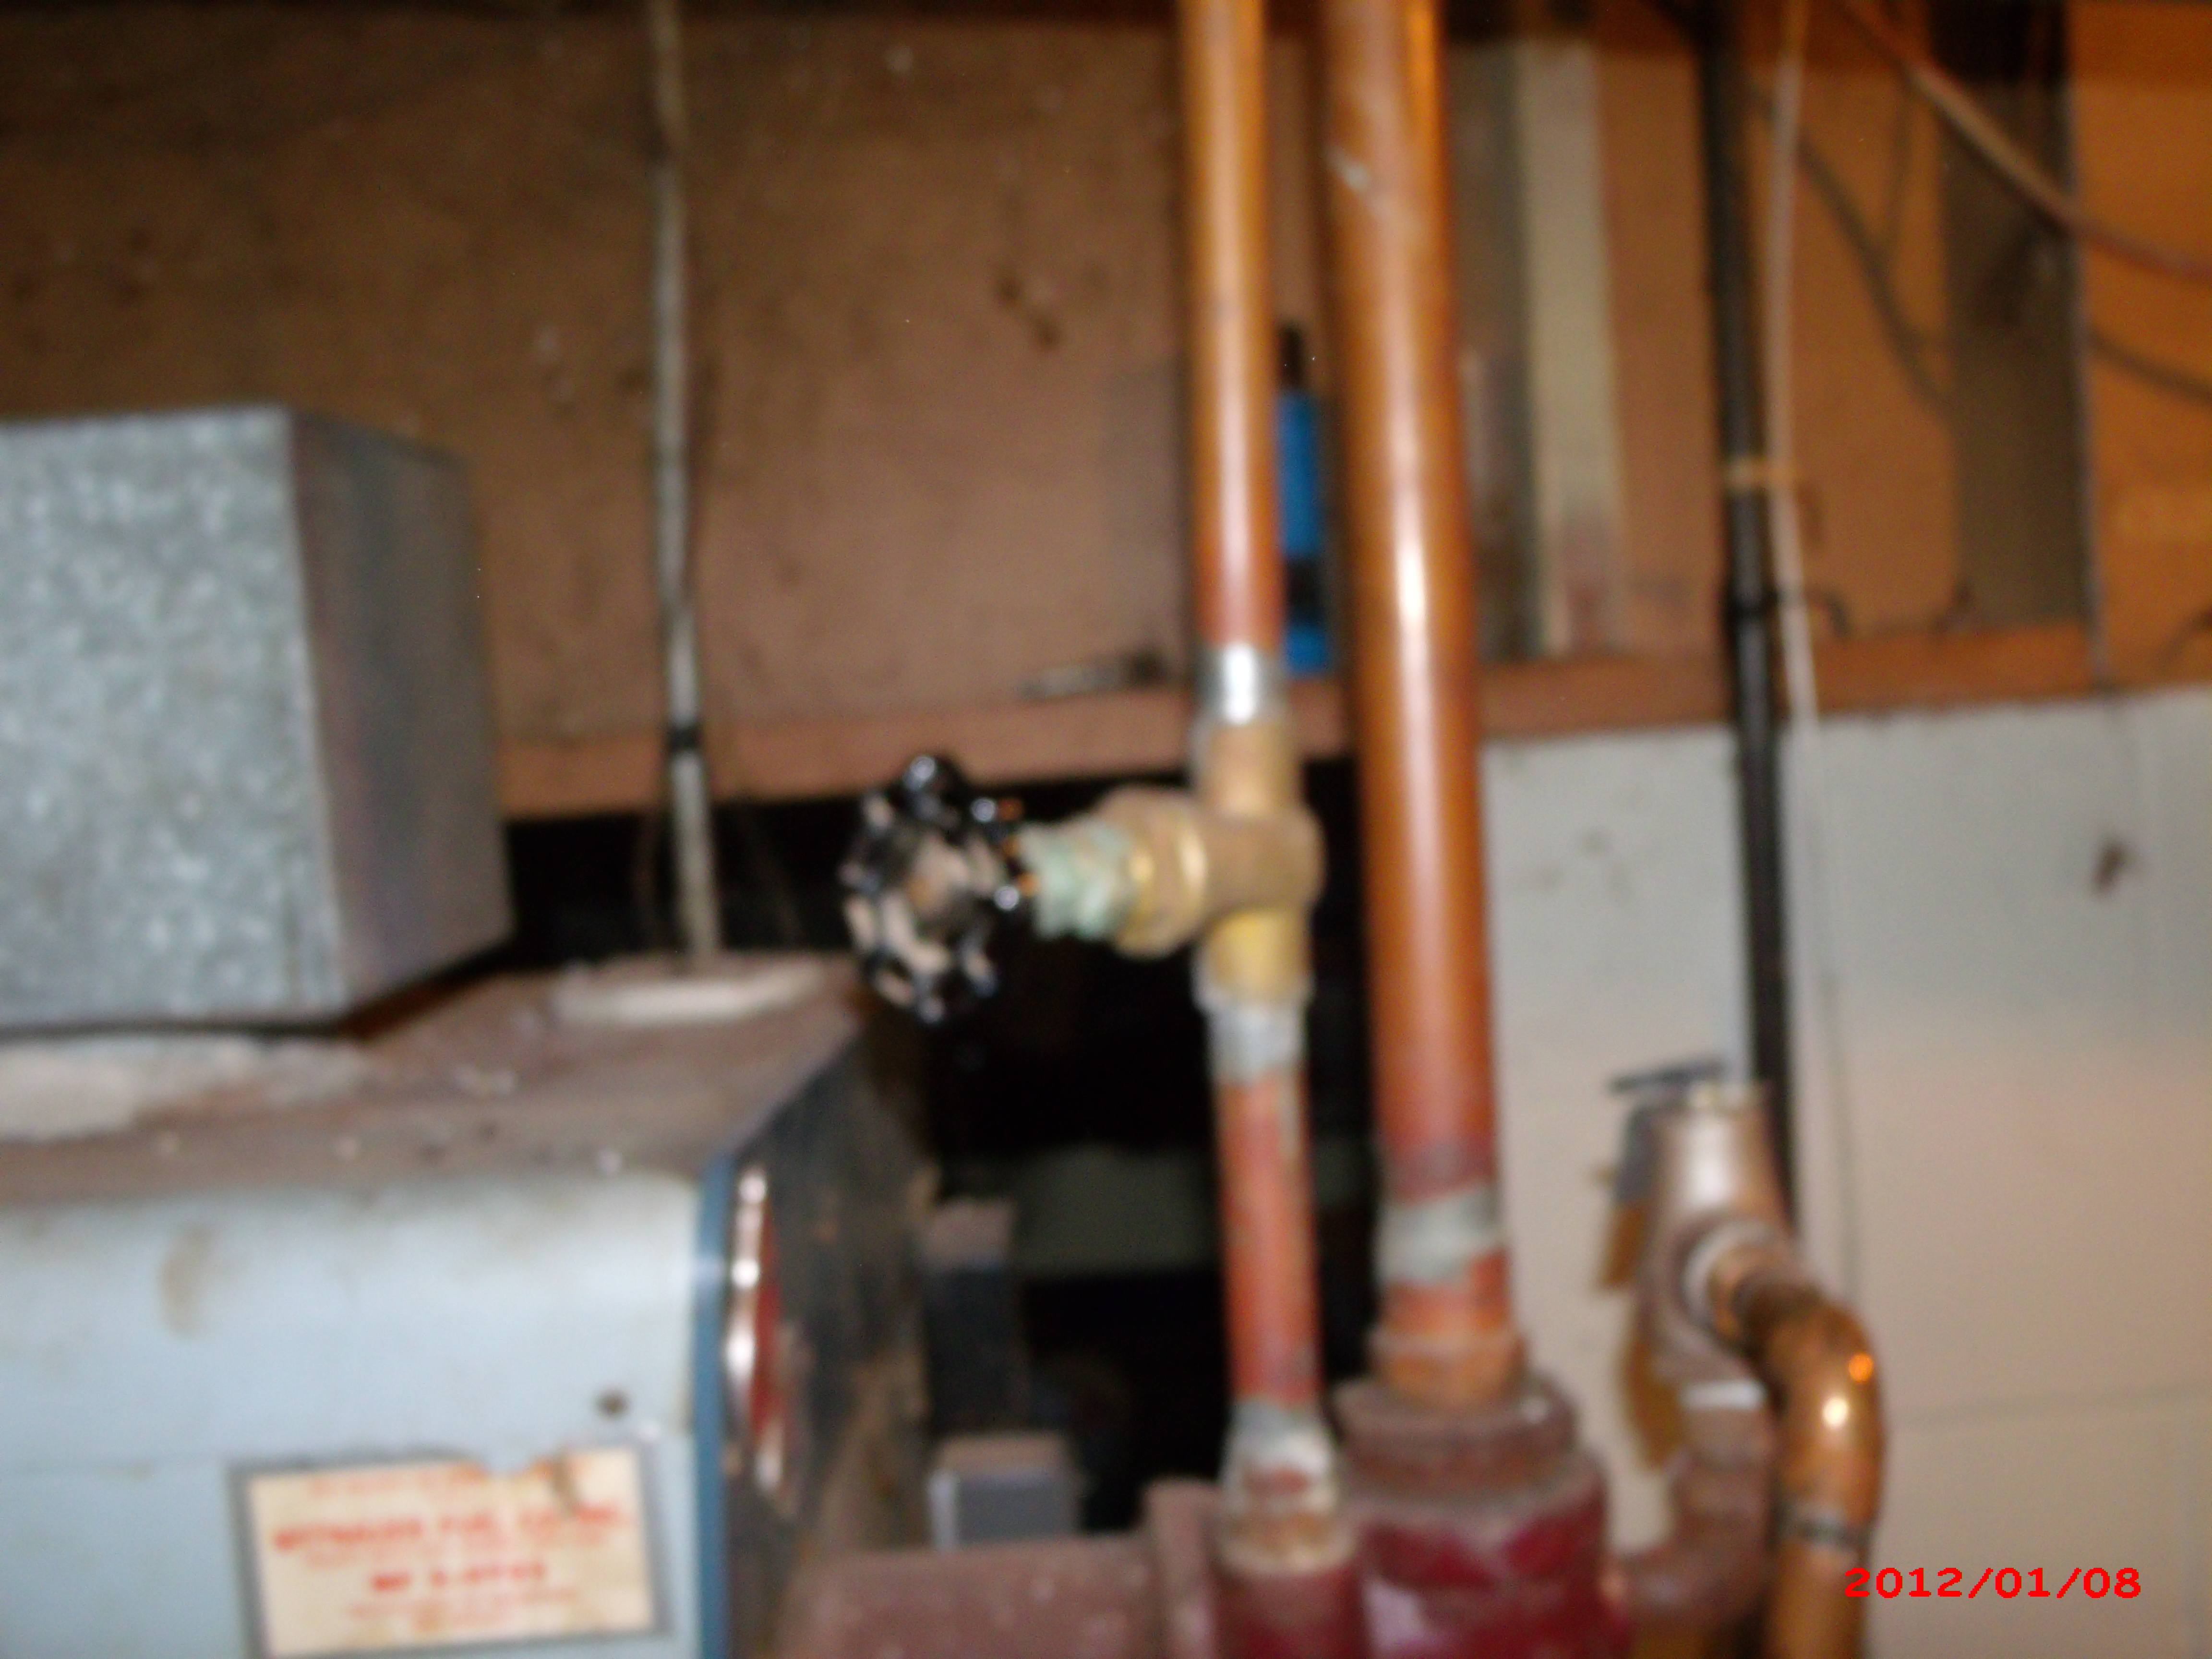 have a hot water baseboard heating system. The zone valves #995F32